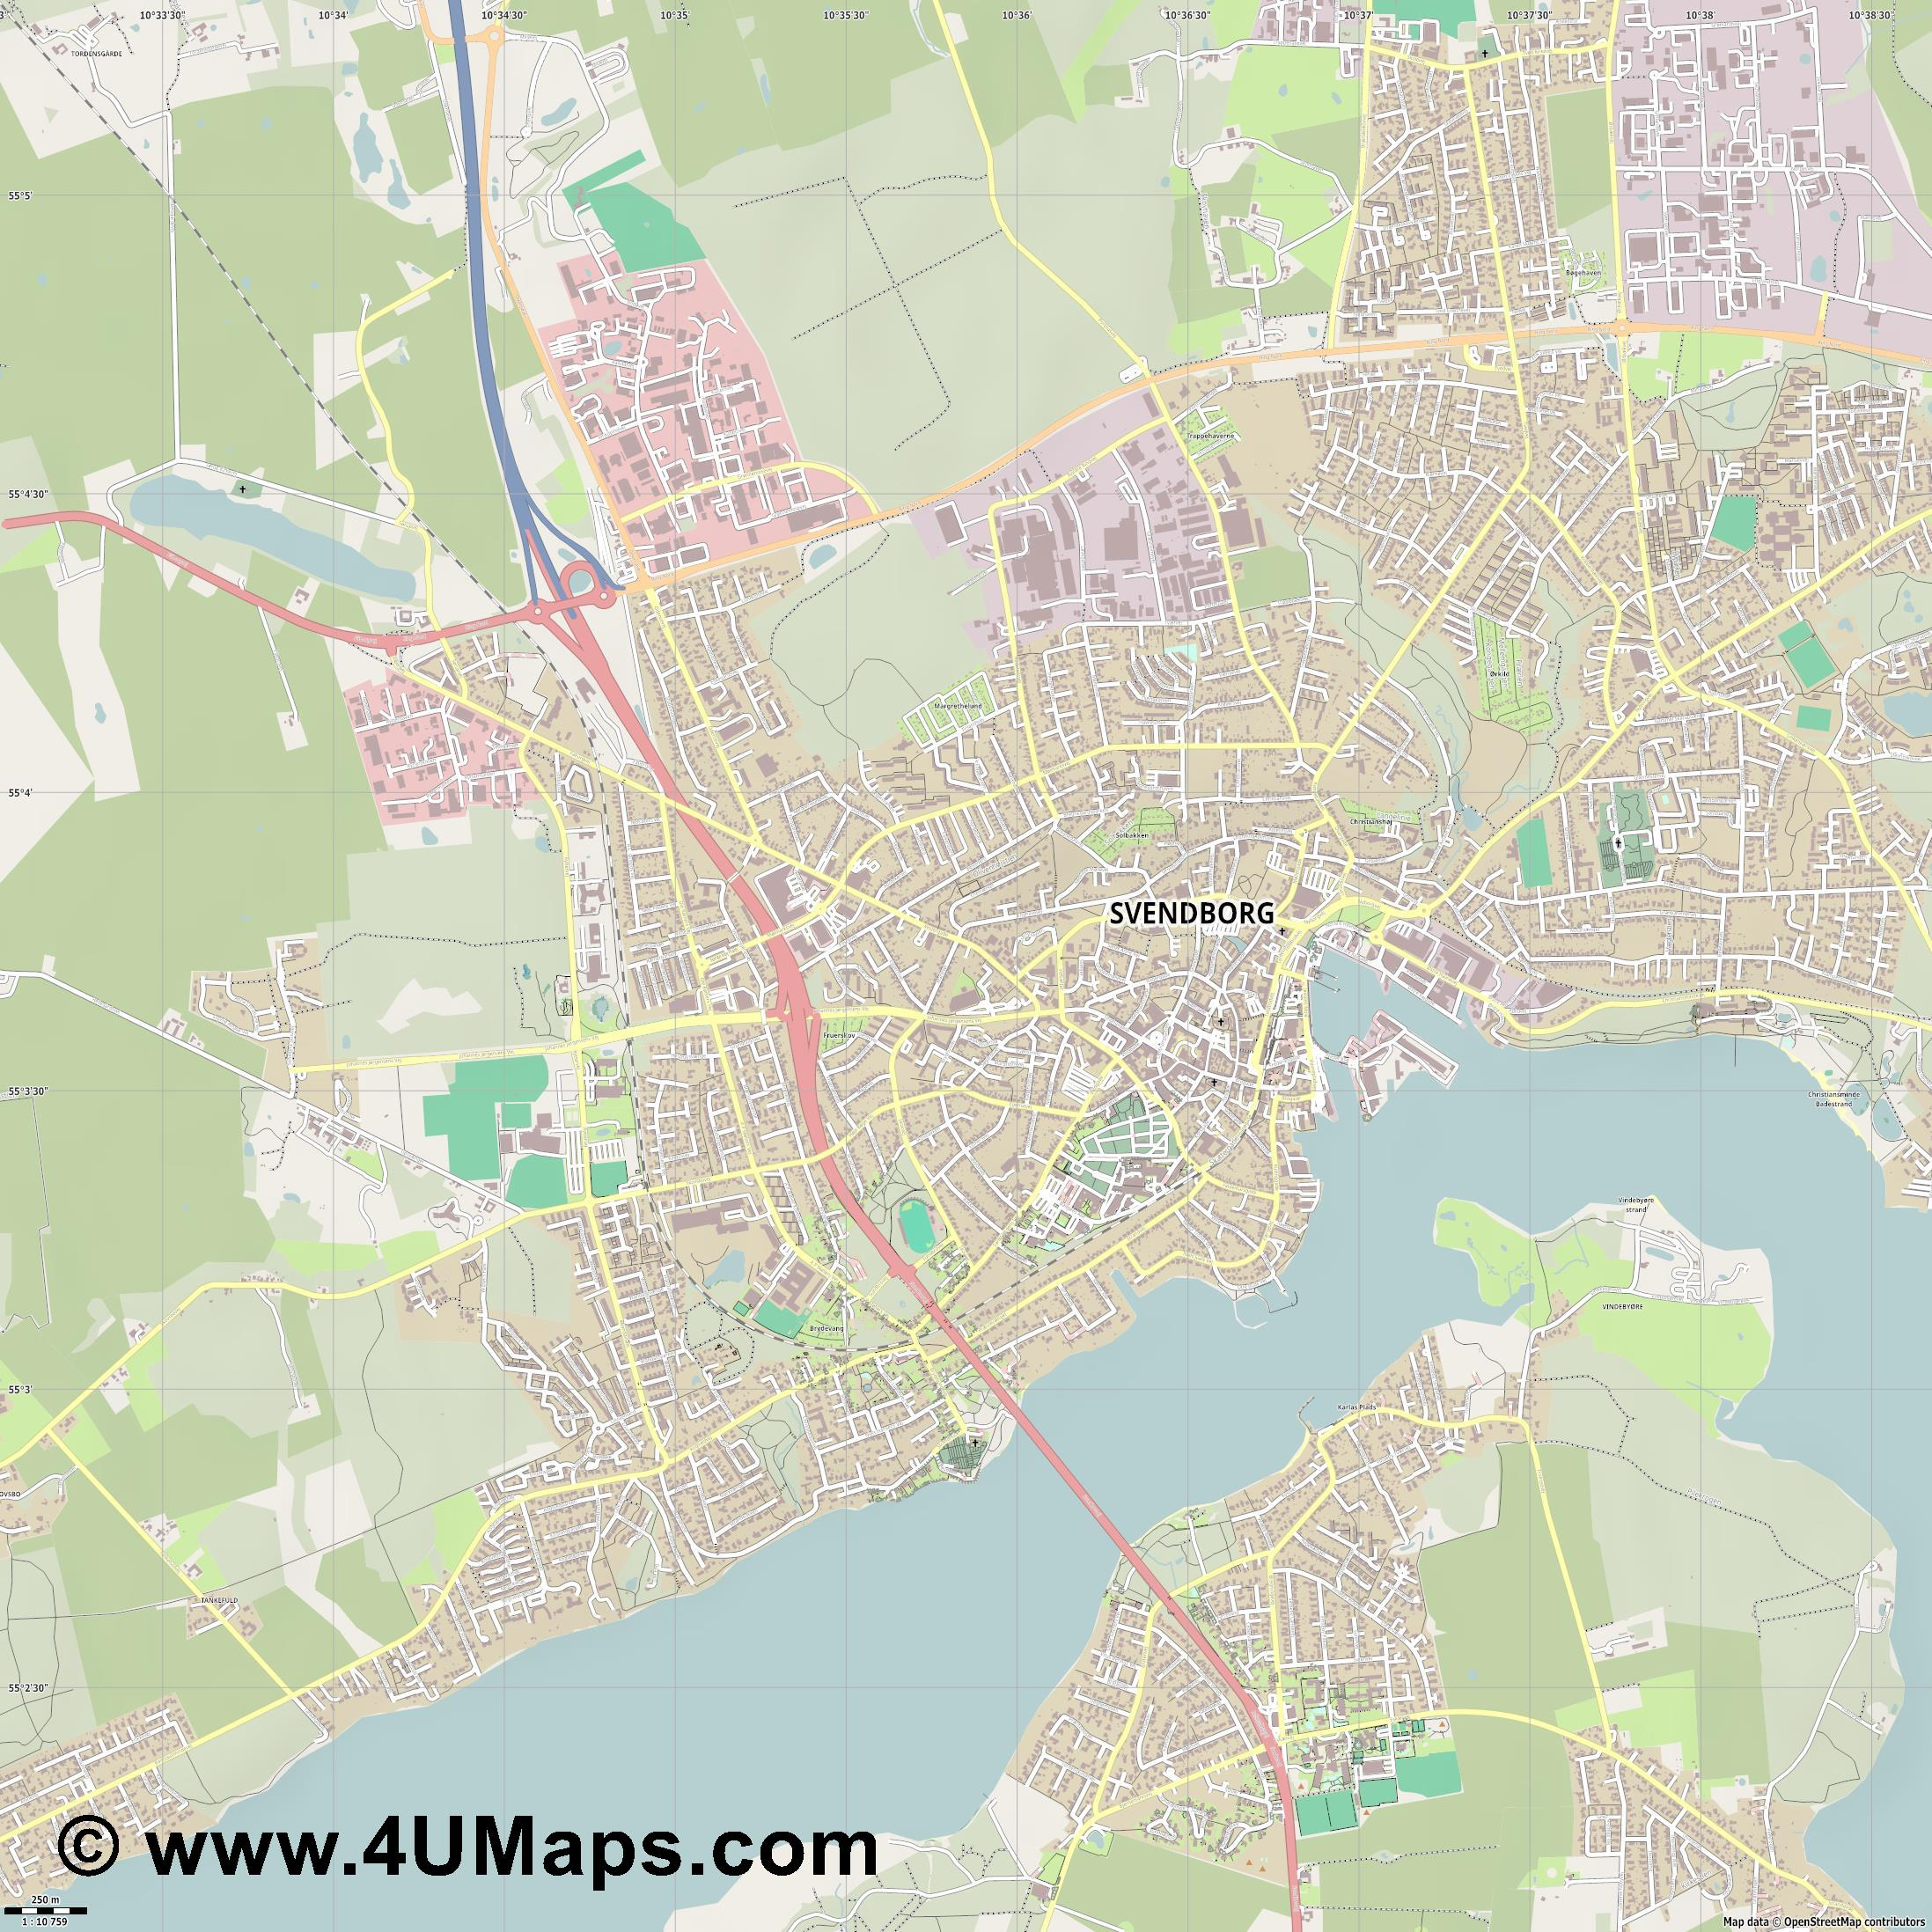 Svendborg Schwenburg  jpg ultra high detail preview vector city map